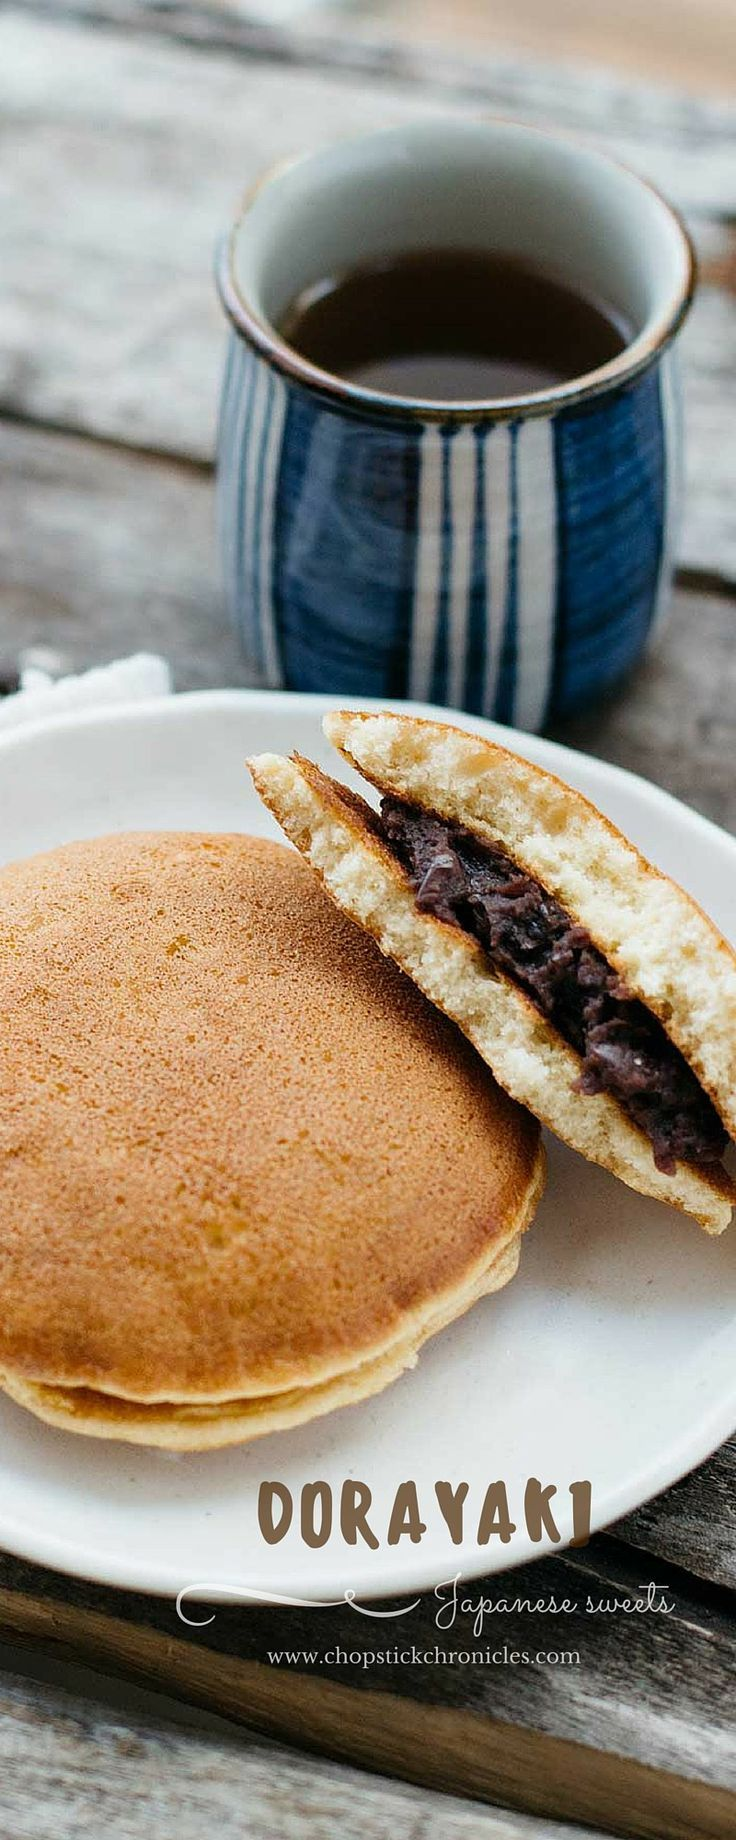 Dorayaki Is A Popular And Cl Ic Japanese Snack Made From Pancakes And Red Bean Paste